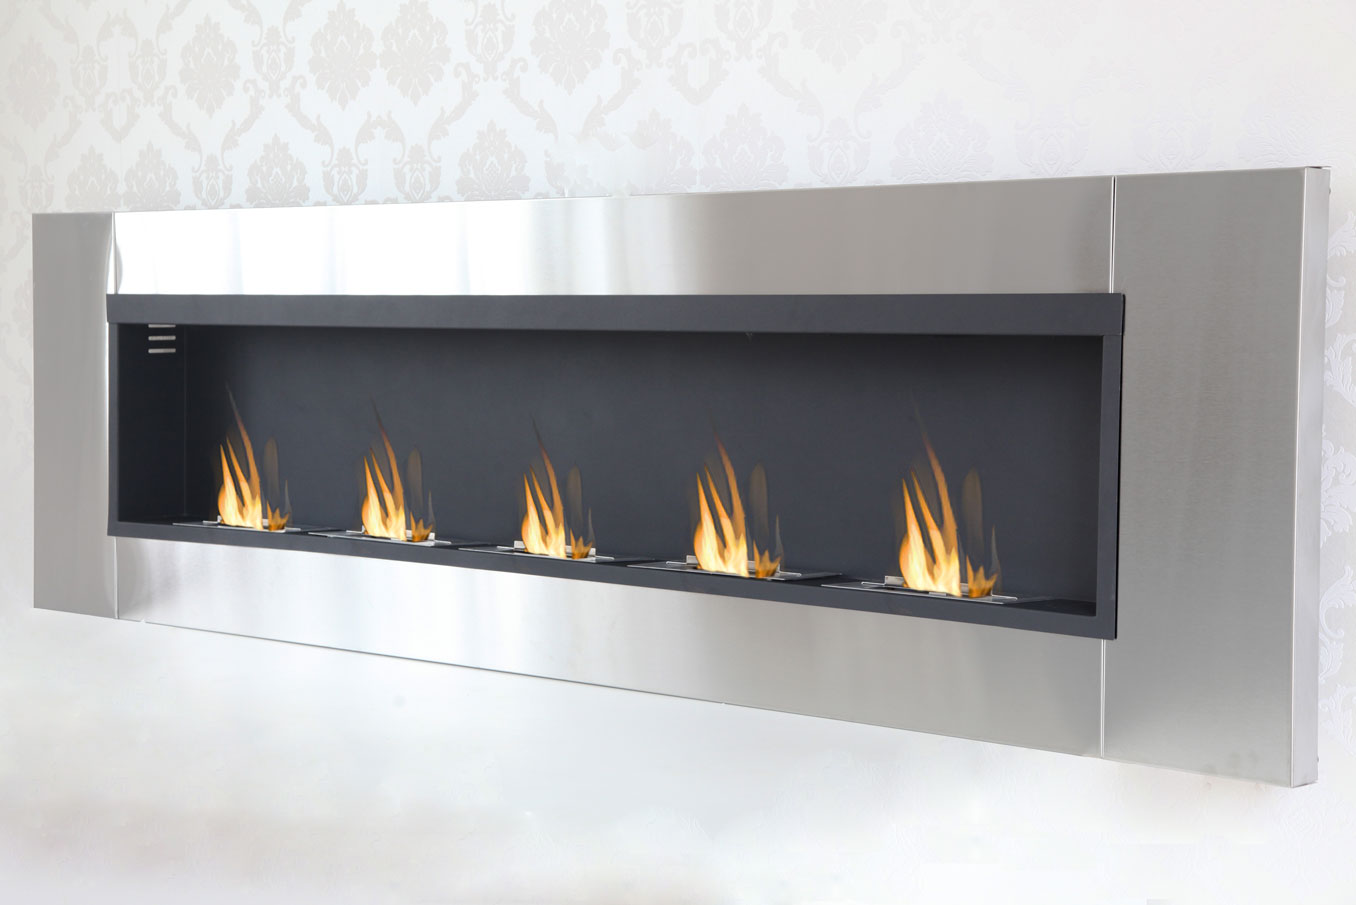 190 cm luxury chimney bio ethanol gel fireplace wall fireplace cheminee. Black Bedroom Furniture Sets. Home Design Ideas